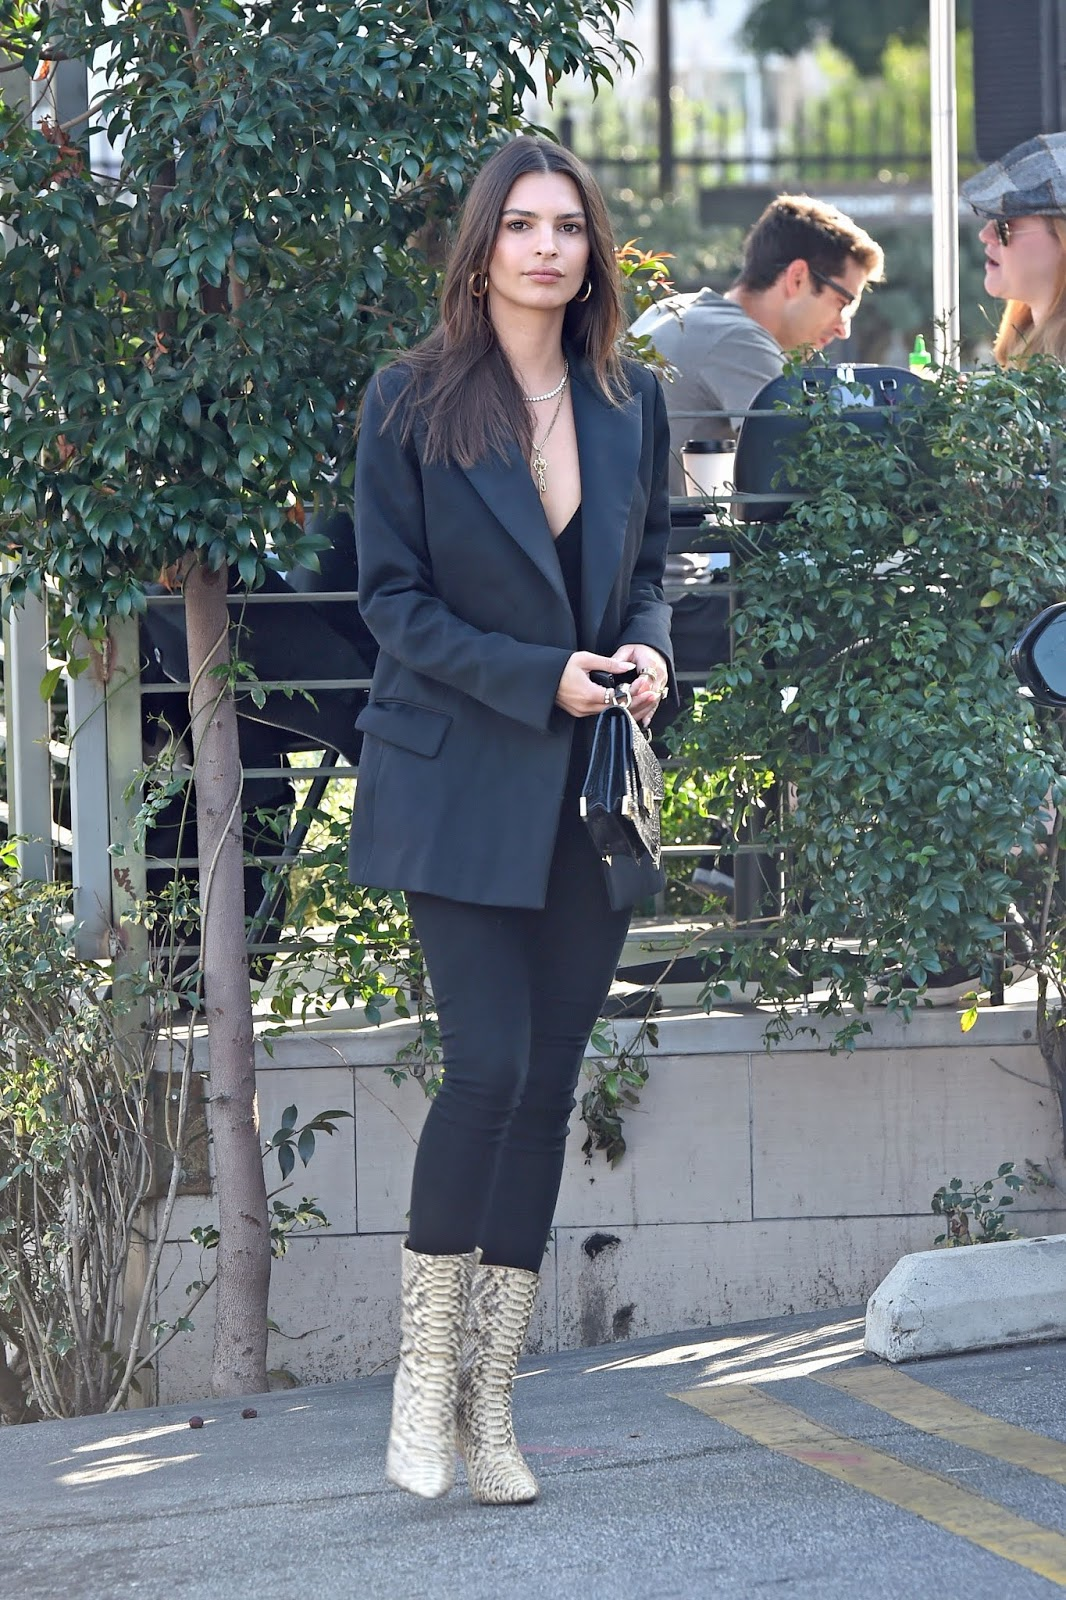 Emily Ratajkowski is Spotted Grabbing a Bite to Eat with a Friend in Los Angeles - 01/30/2019